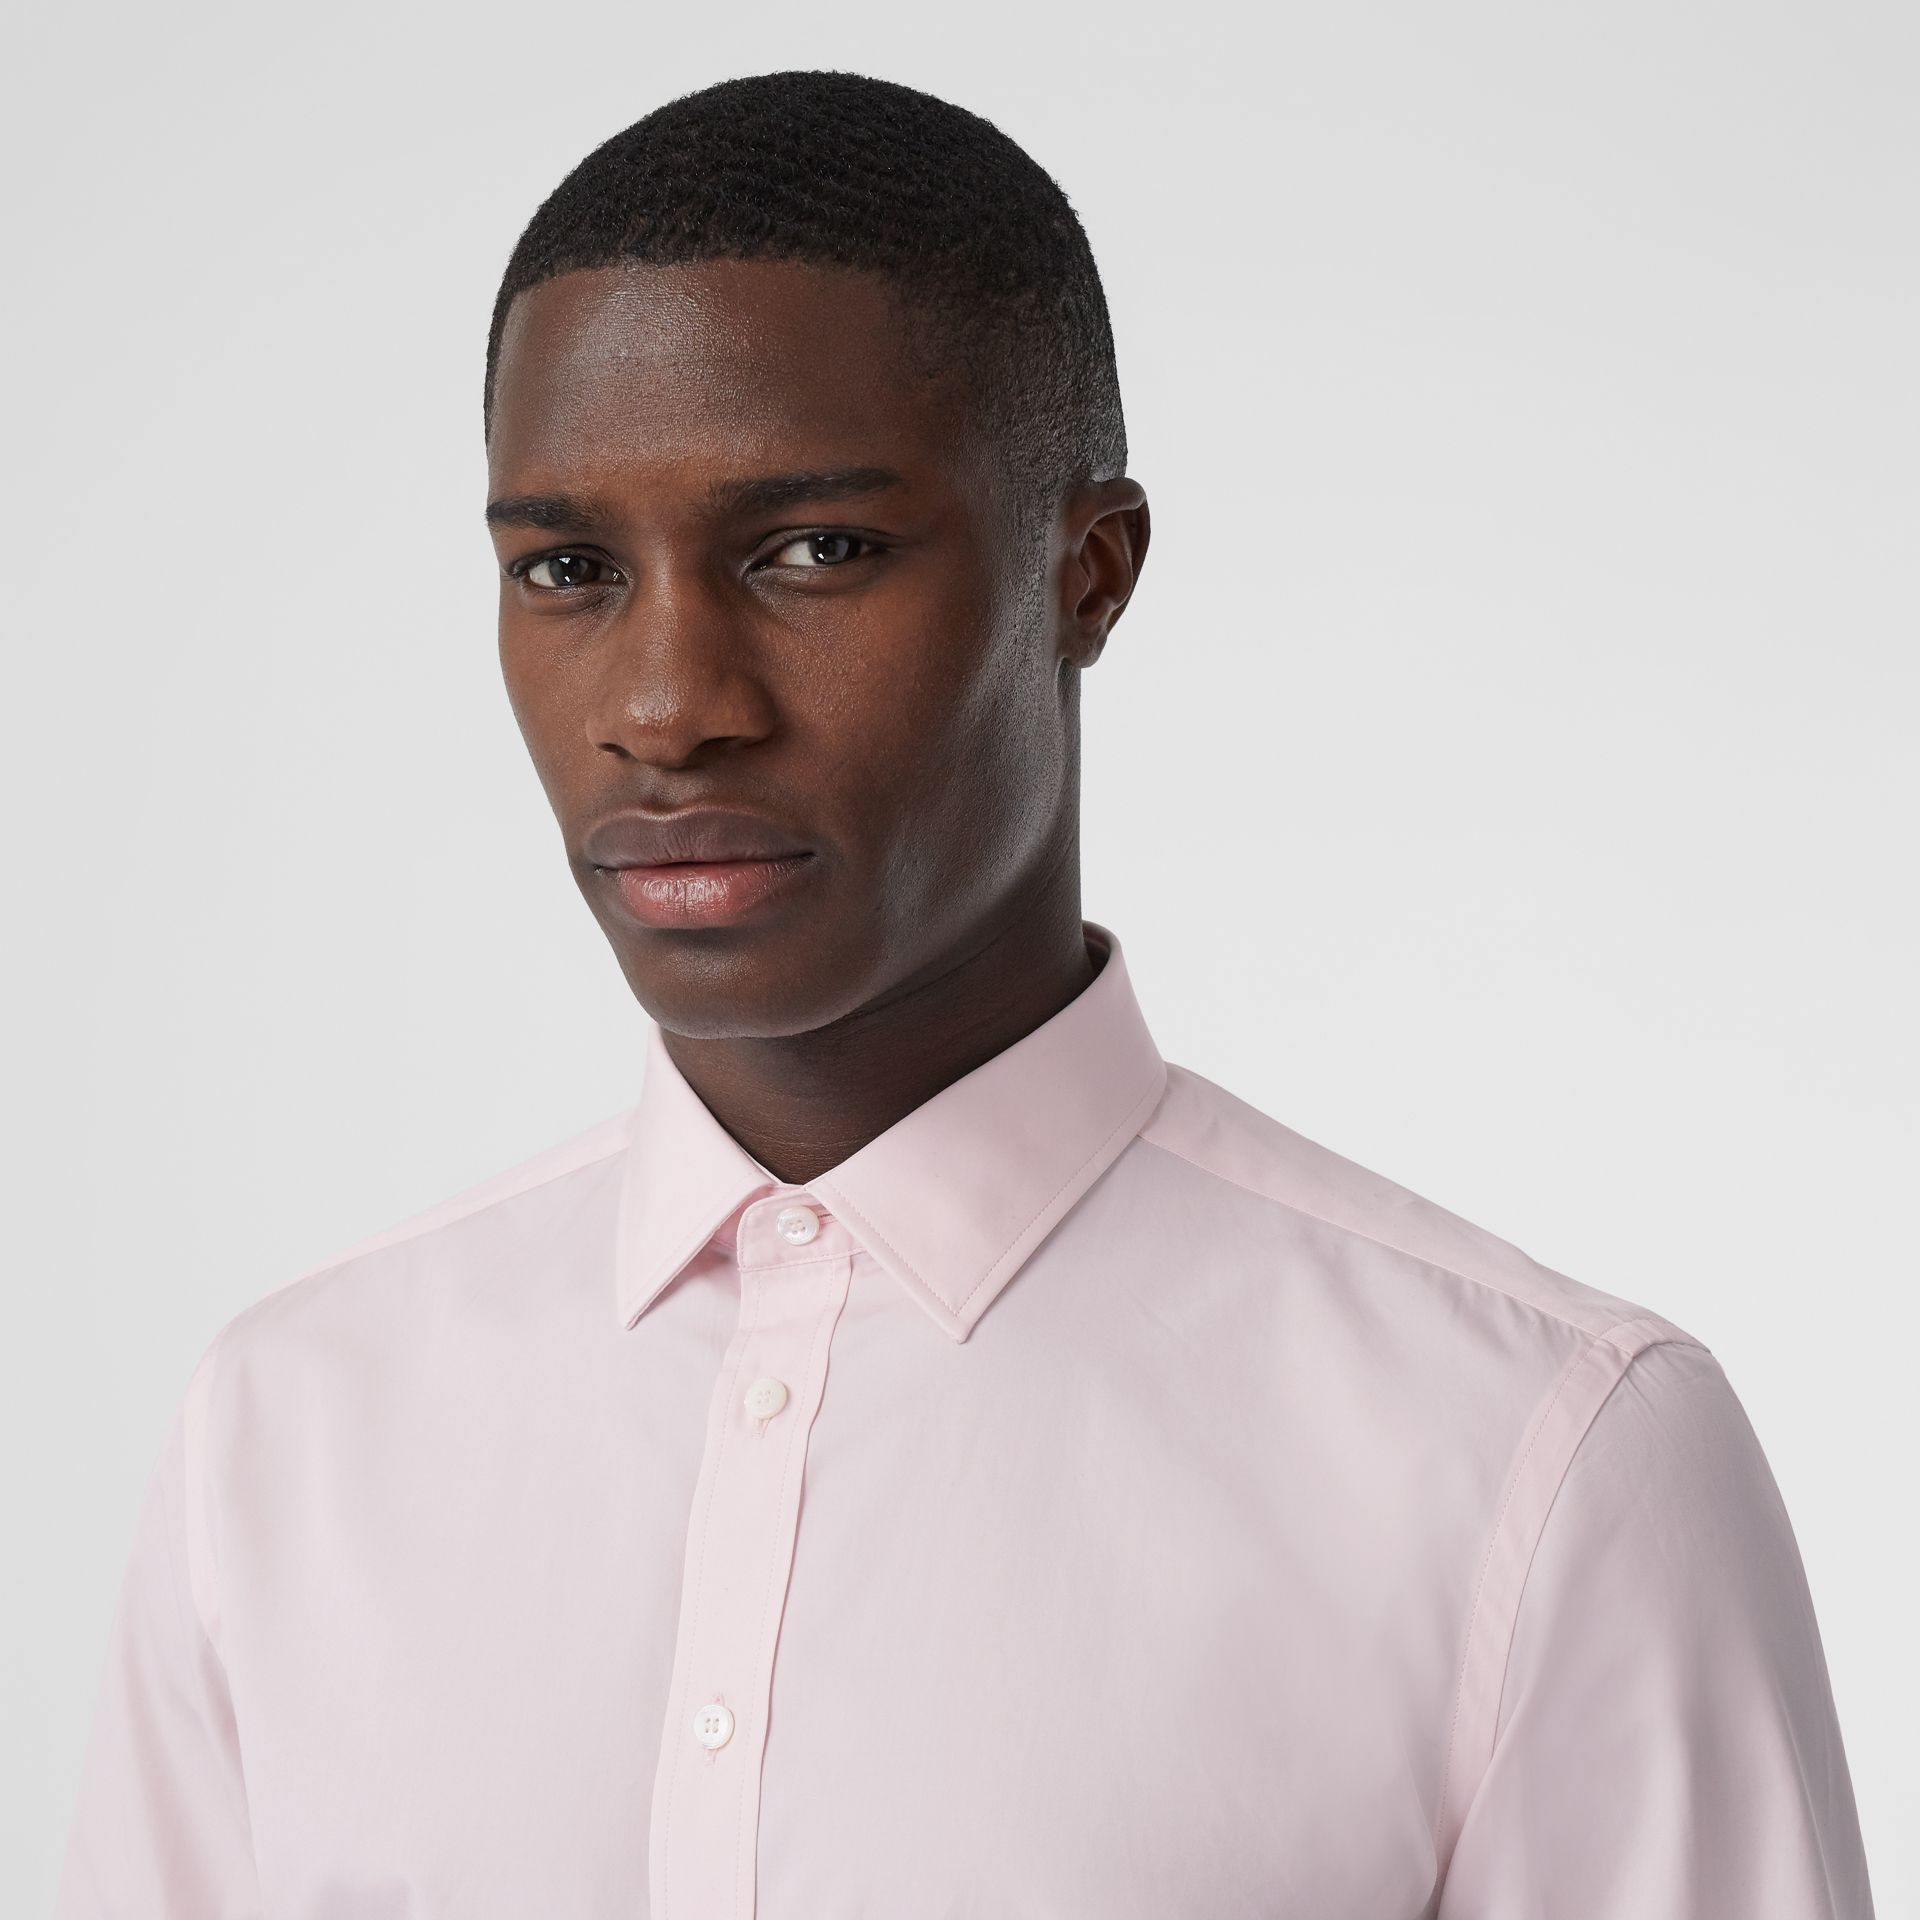 Slim Fit Monogram Motif Cotton Poplin Shirt in Alabaster Pink - Men | Burberry Canada - gallery image 1